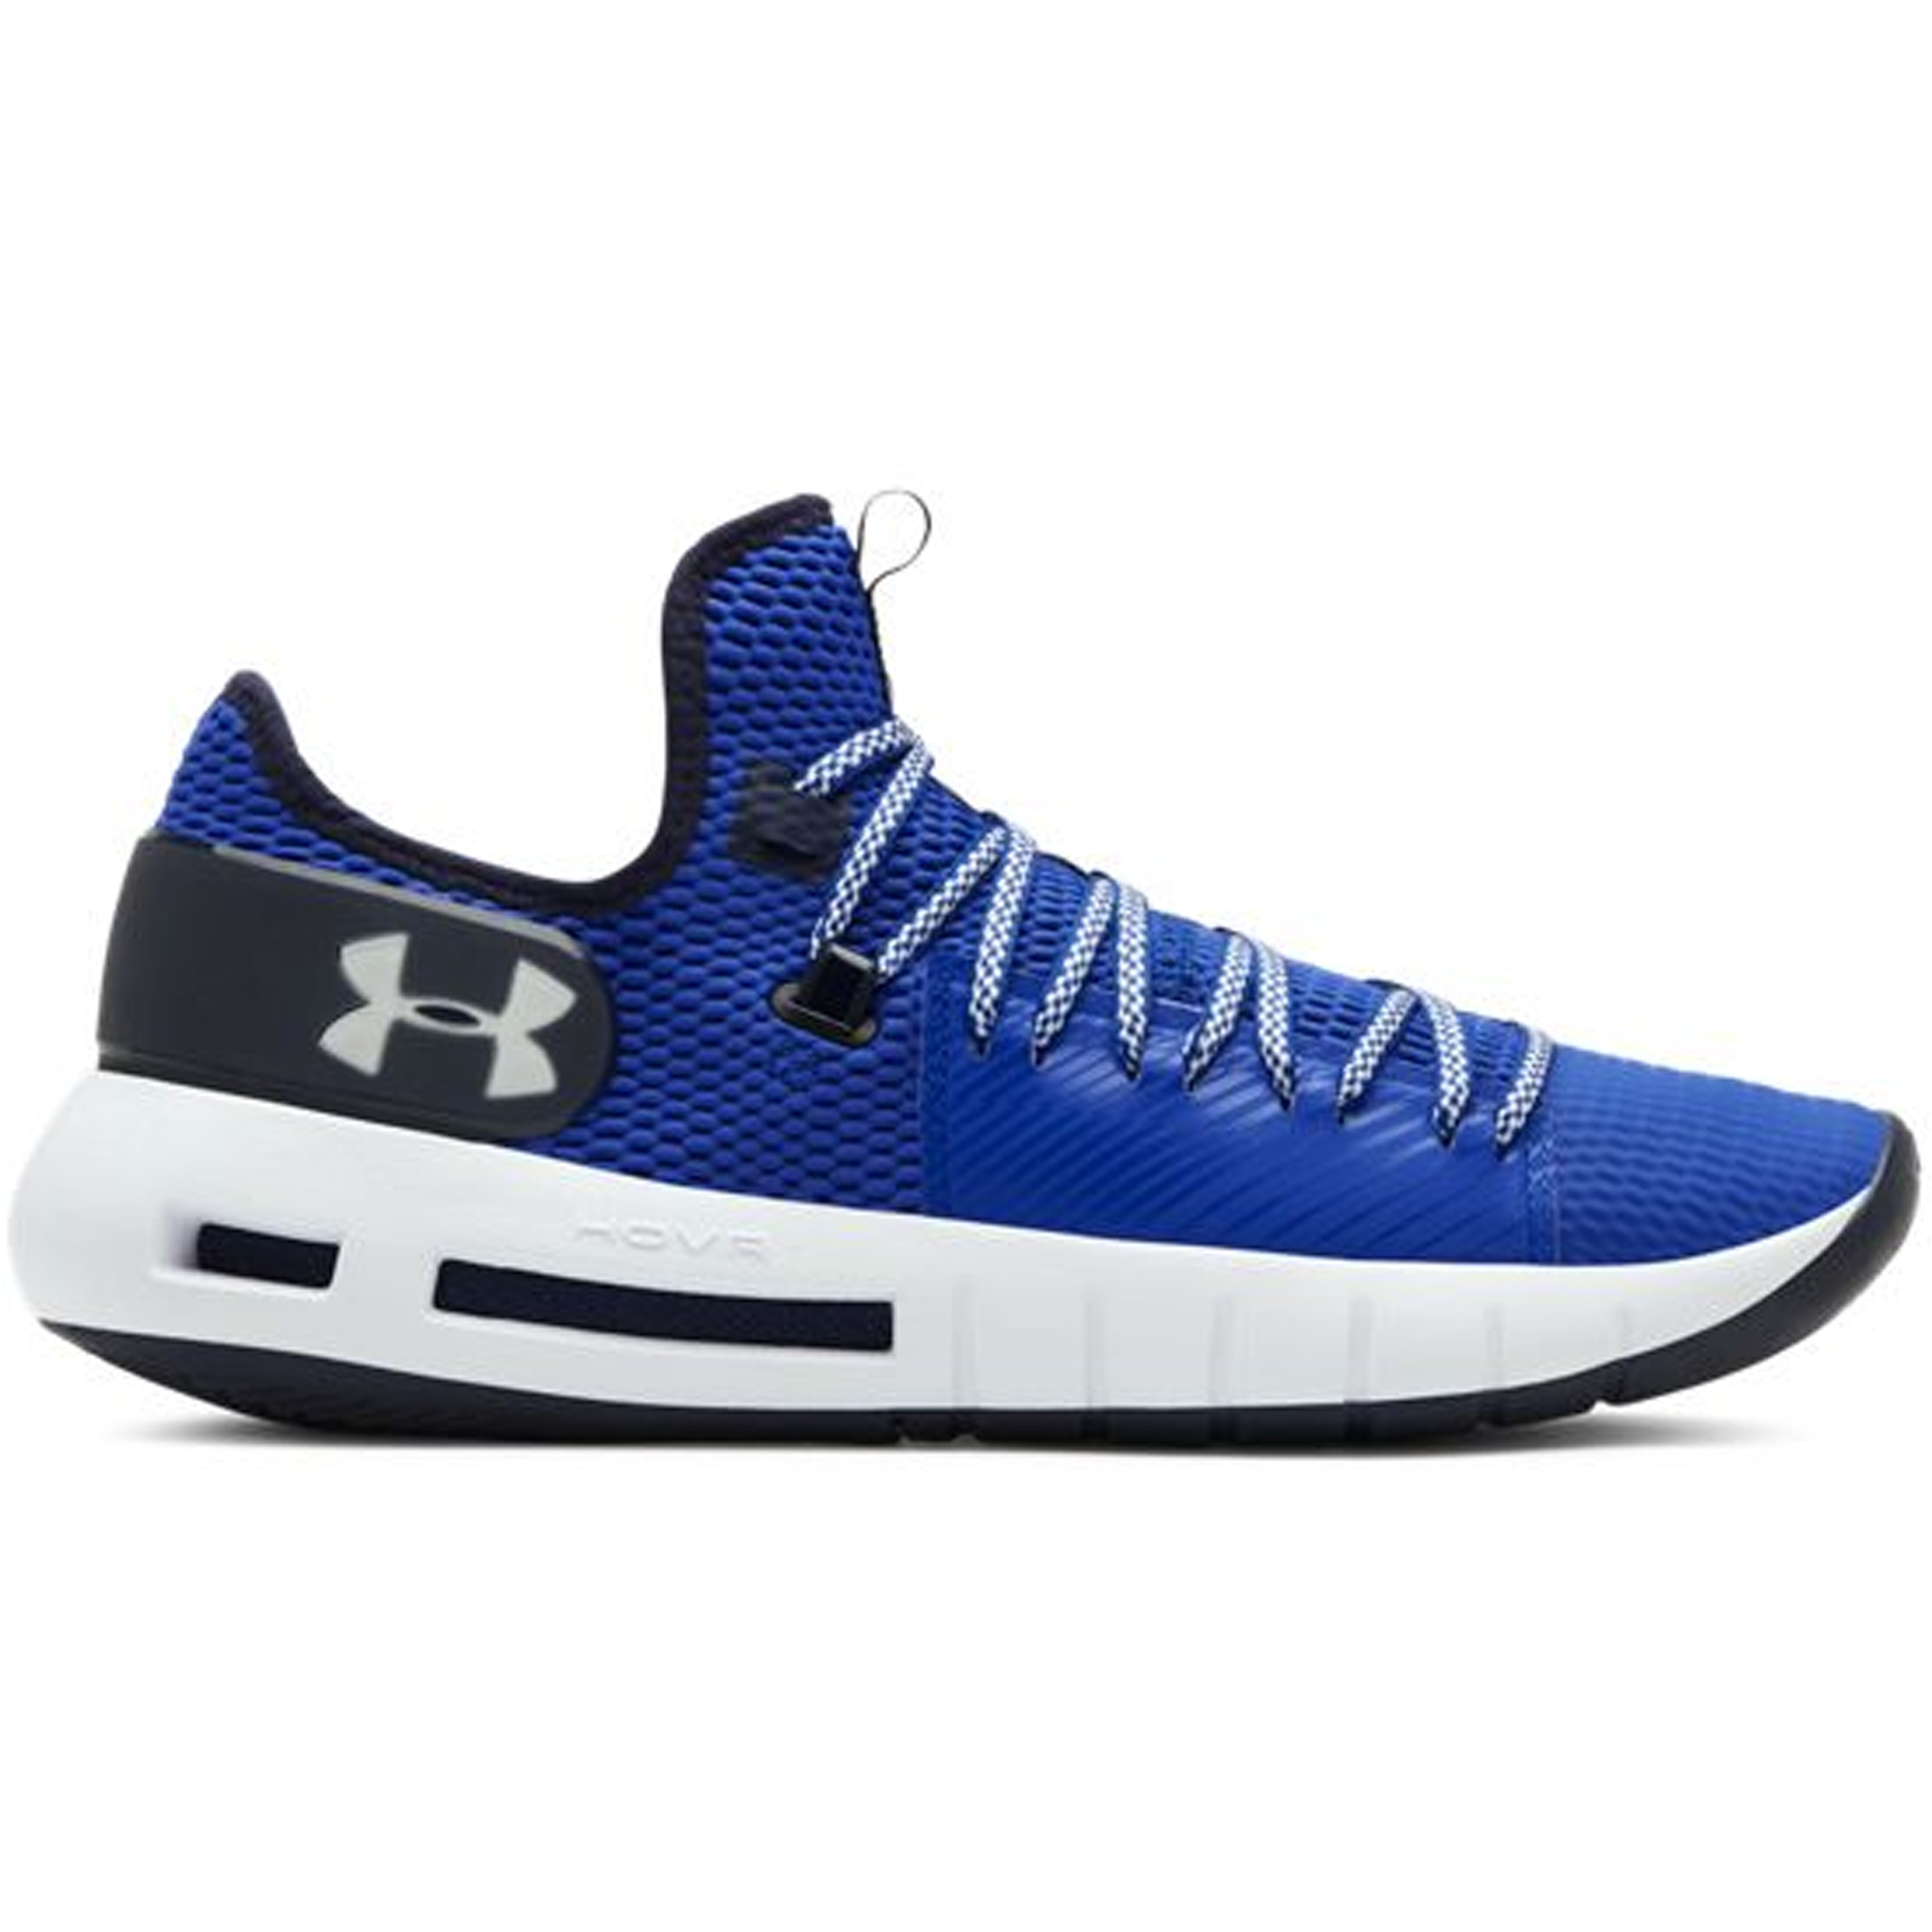 Under Armour Hovr Havoc Low Blue White (3021593-404)